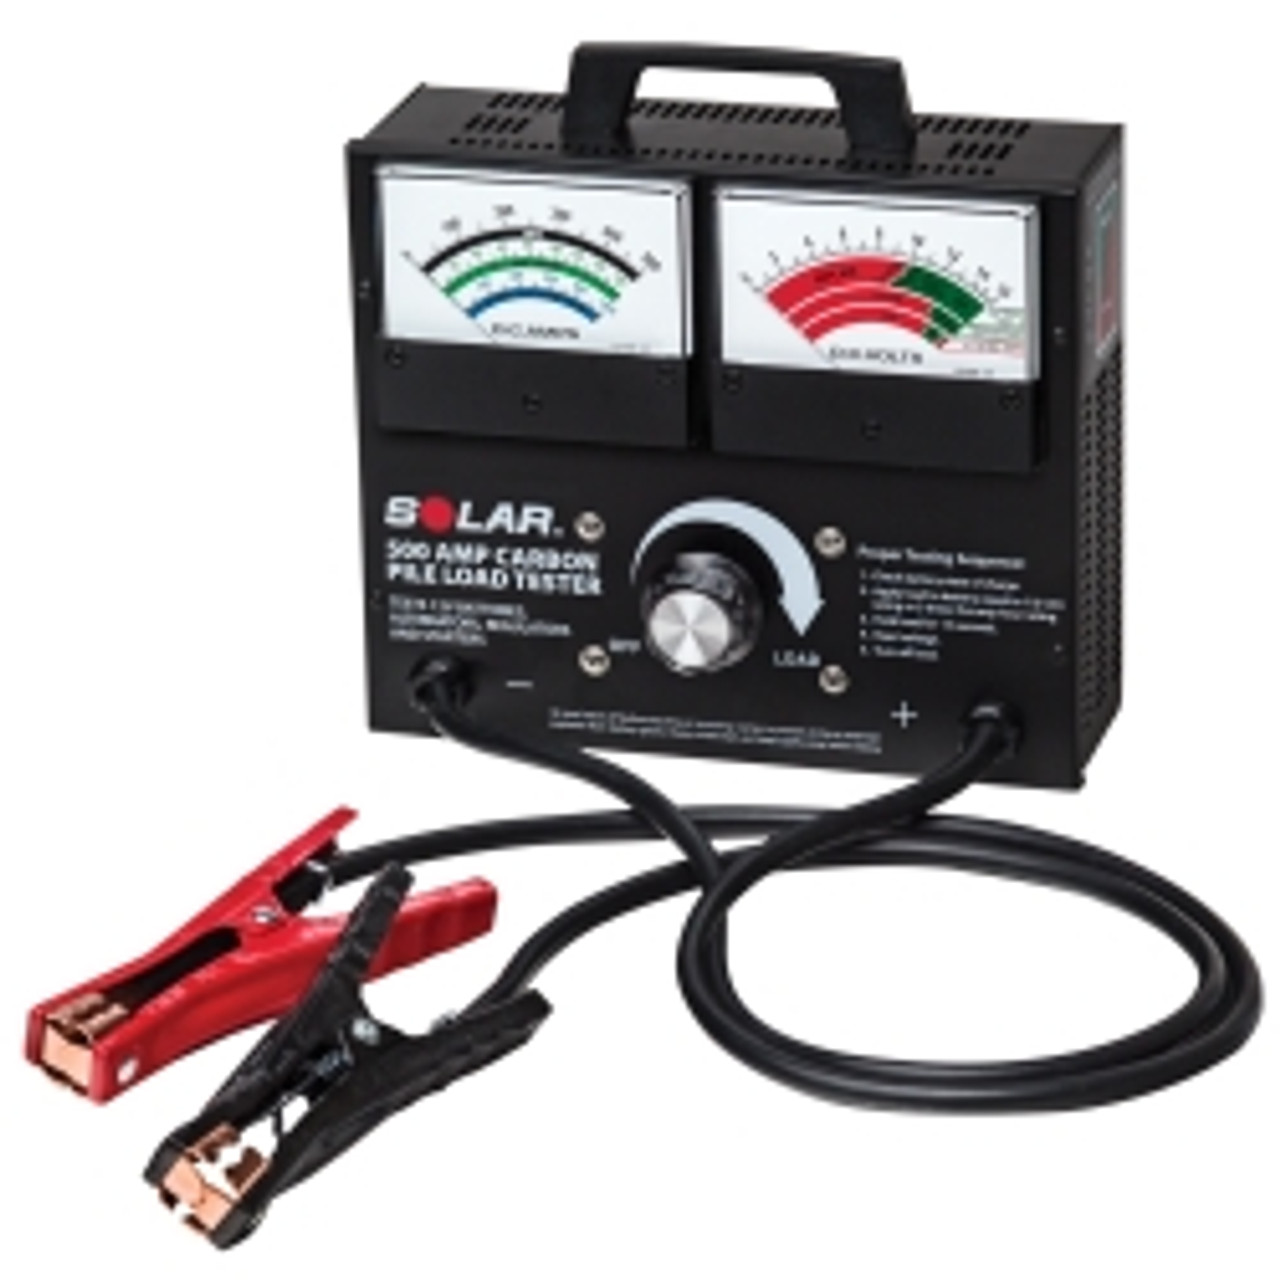 Armor All ABB8-1003-SLV Car Battery Charger and Battery Bank with Glass Breaker